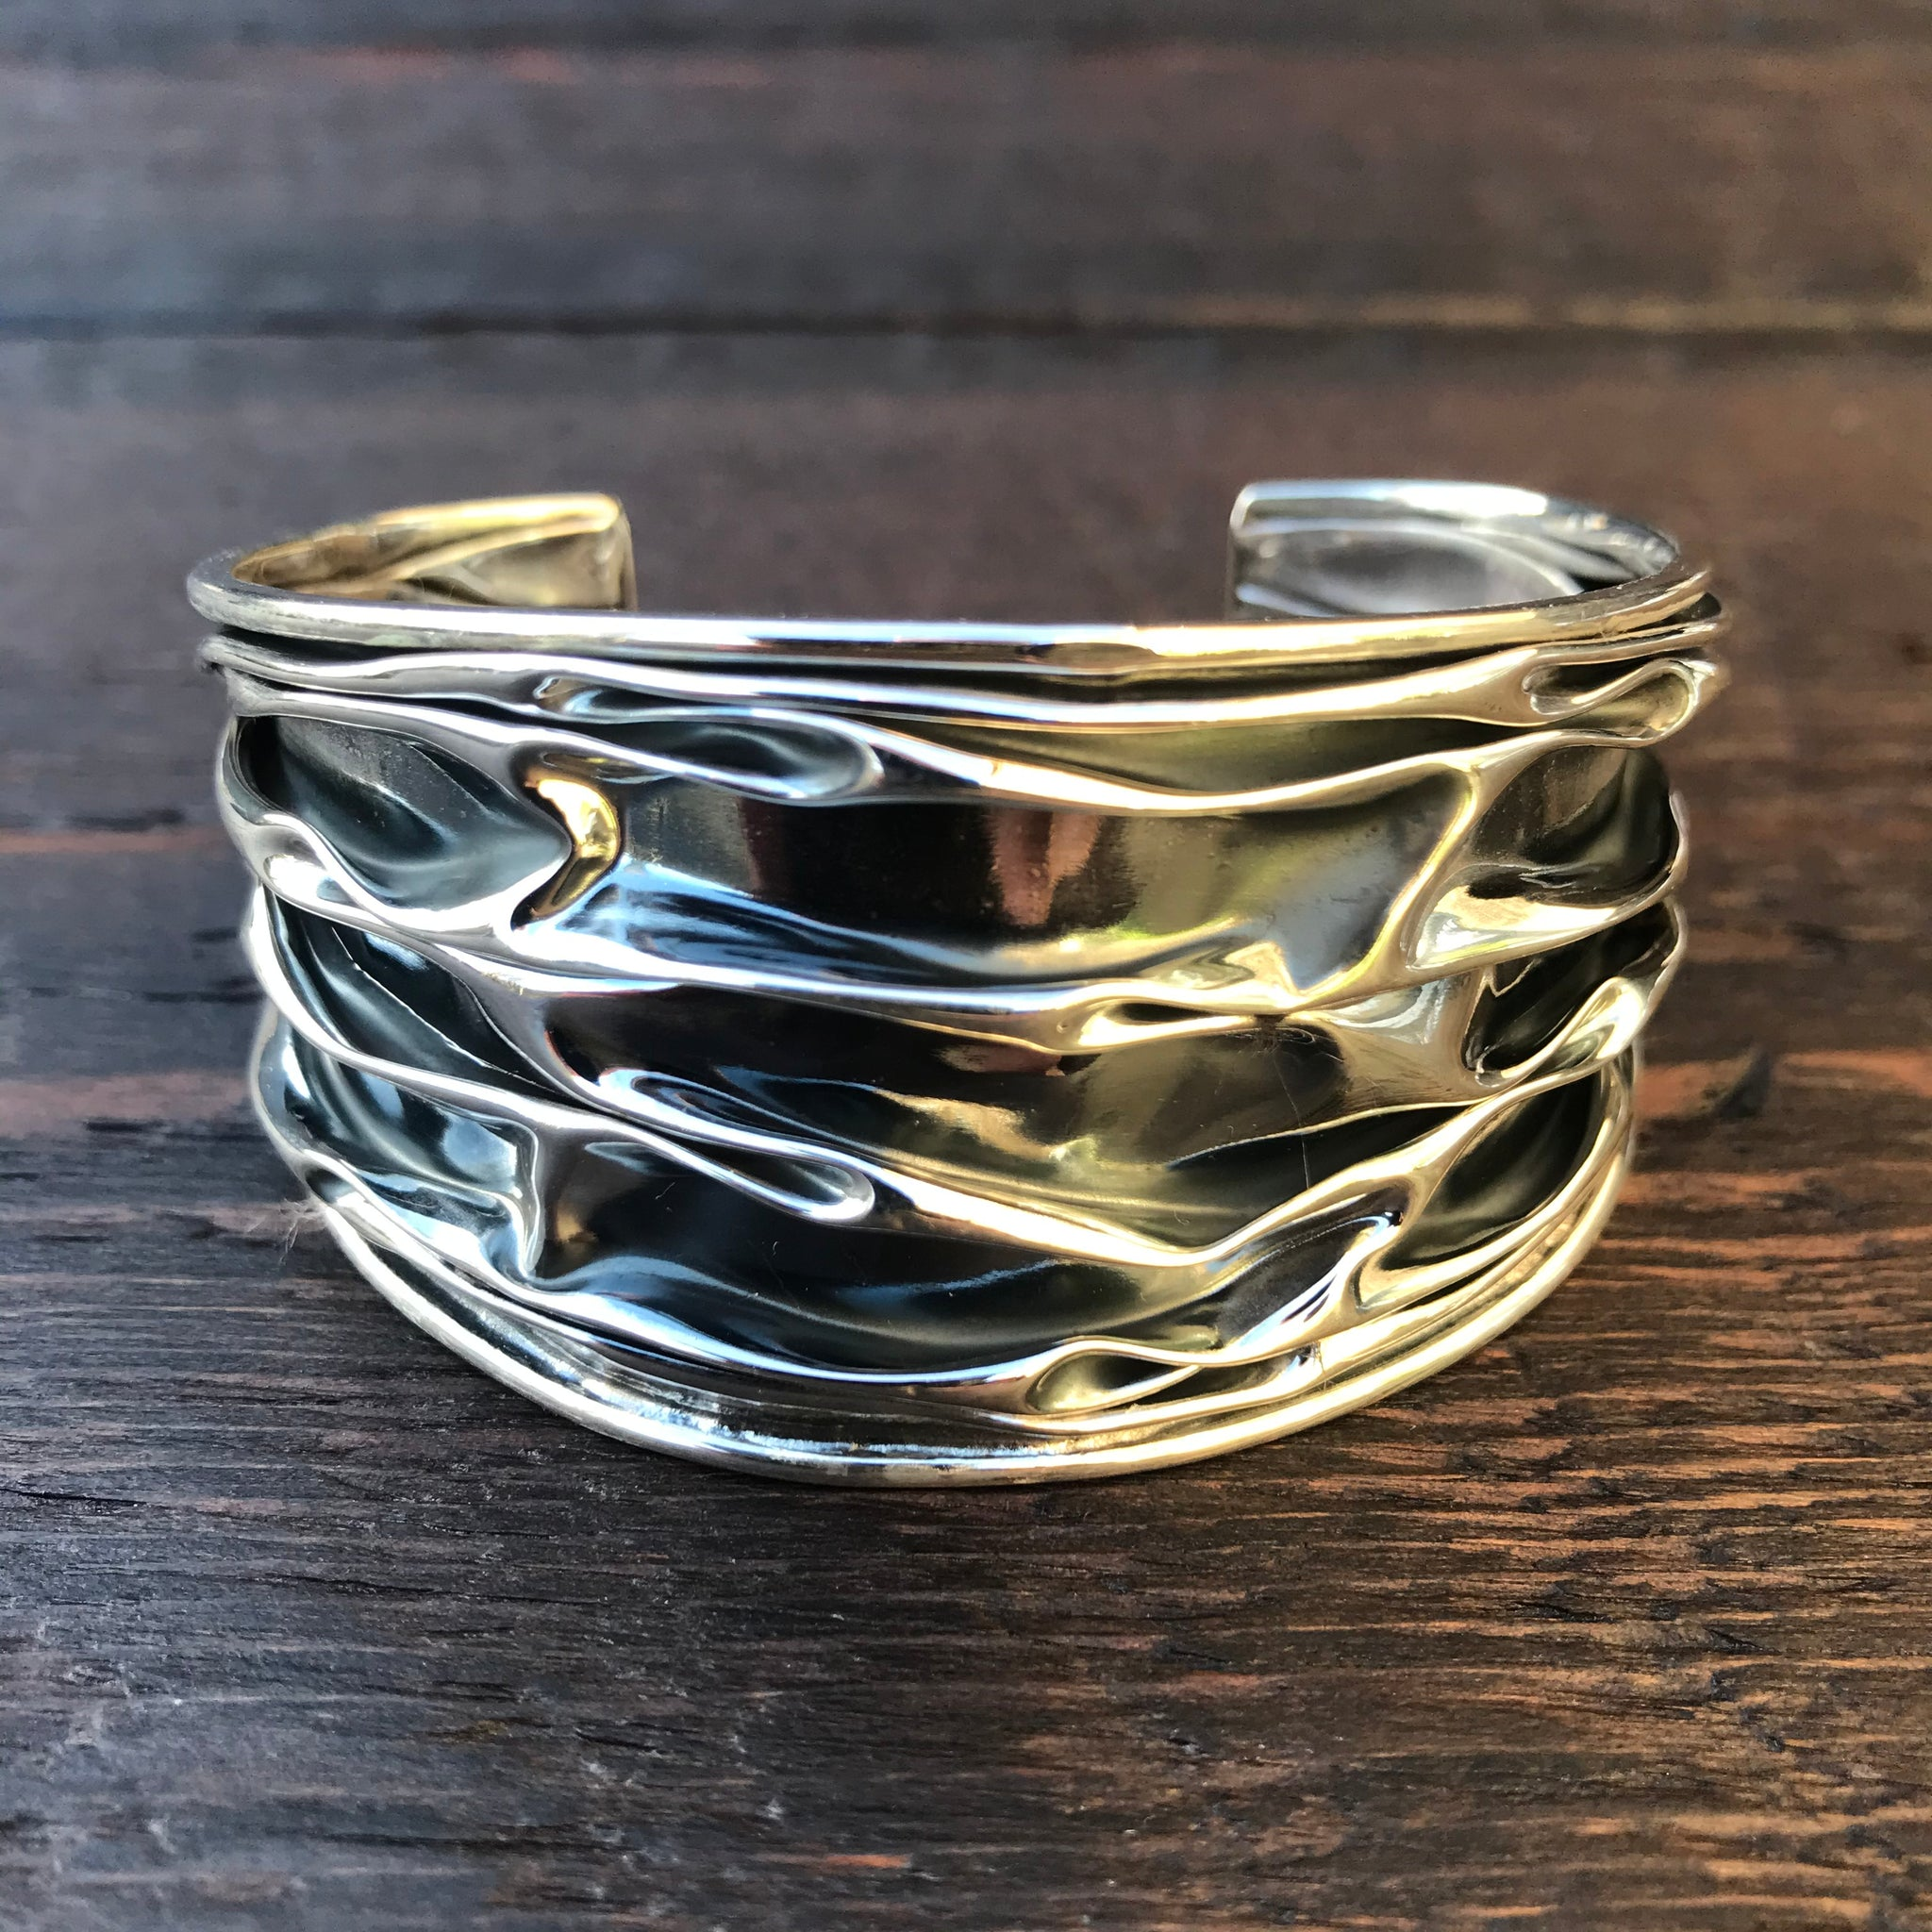 'Rocks' Wide Sterling Silver Cuff Bangle